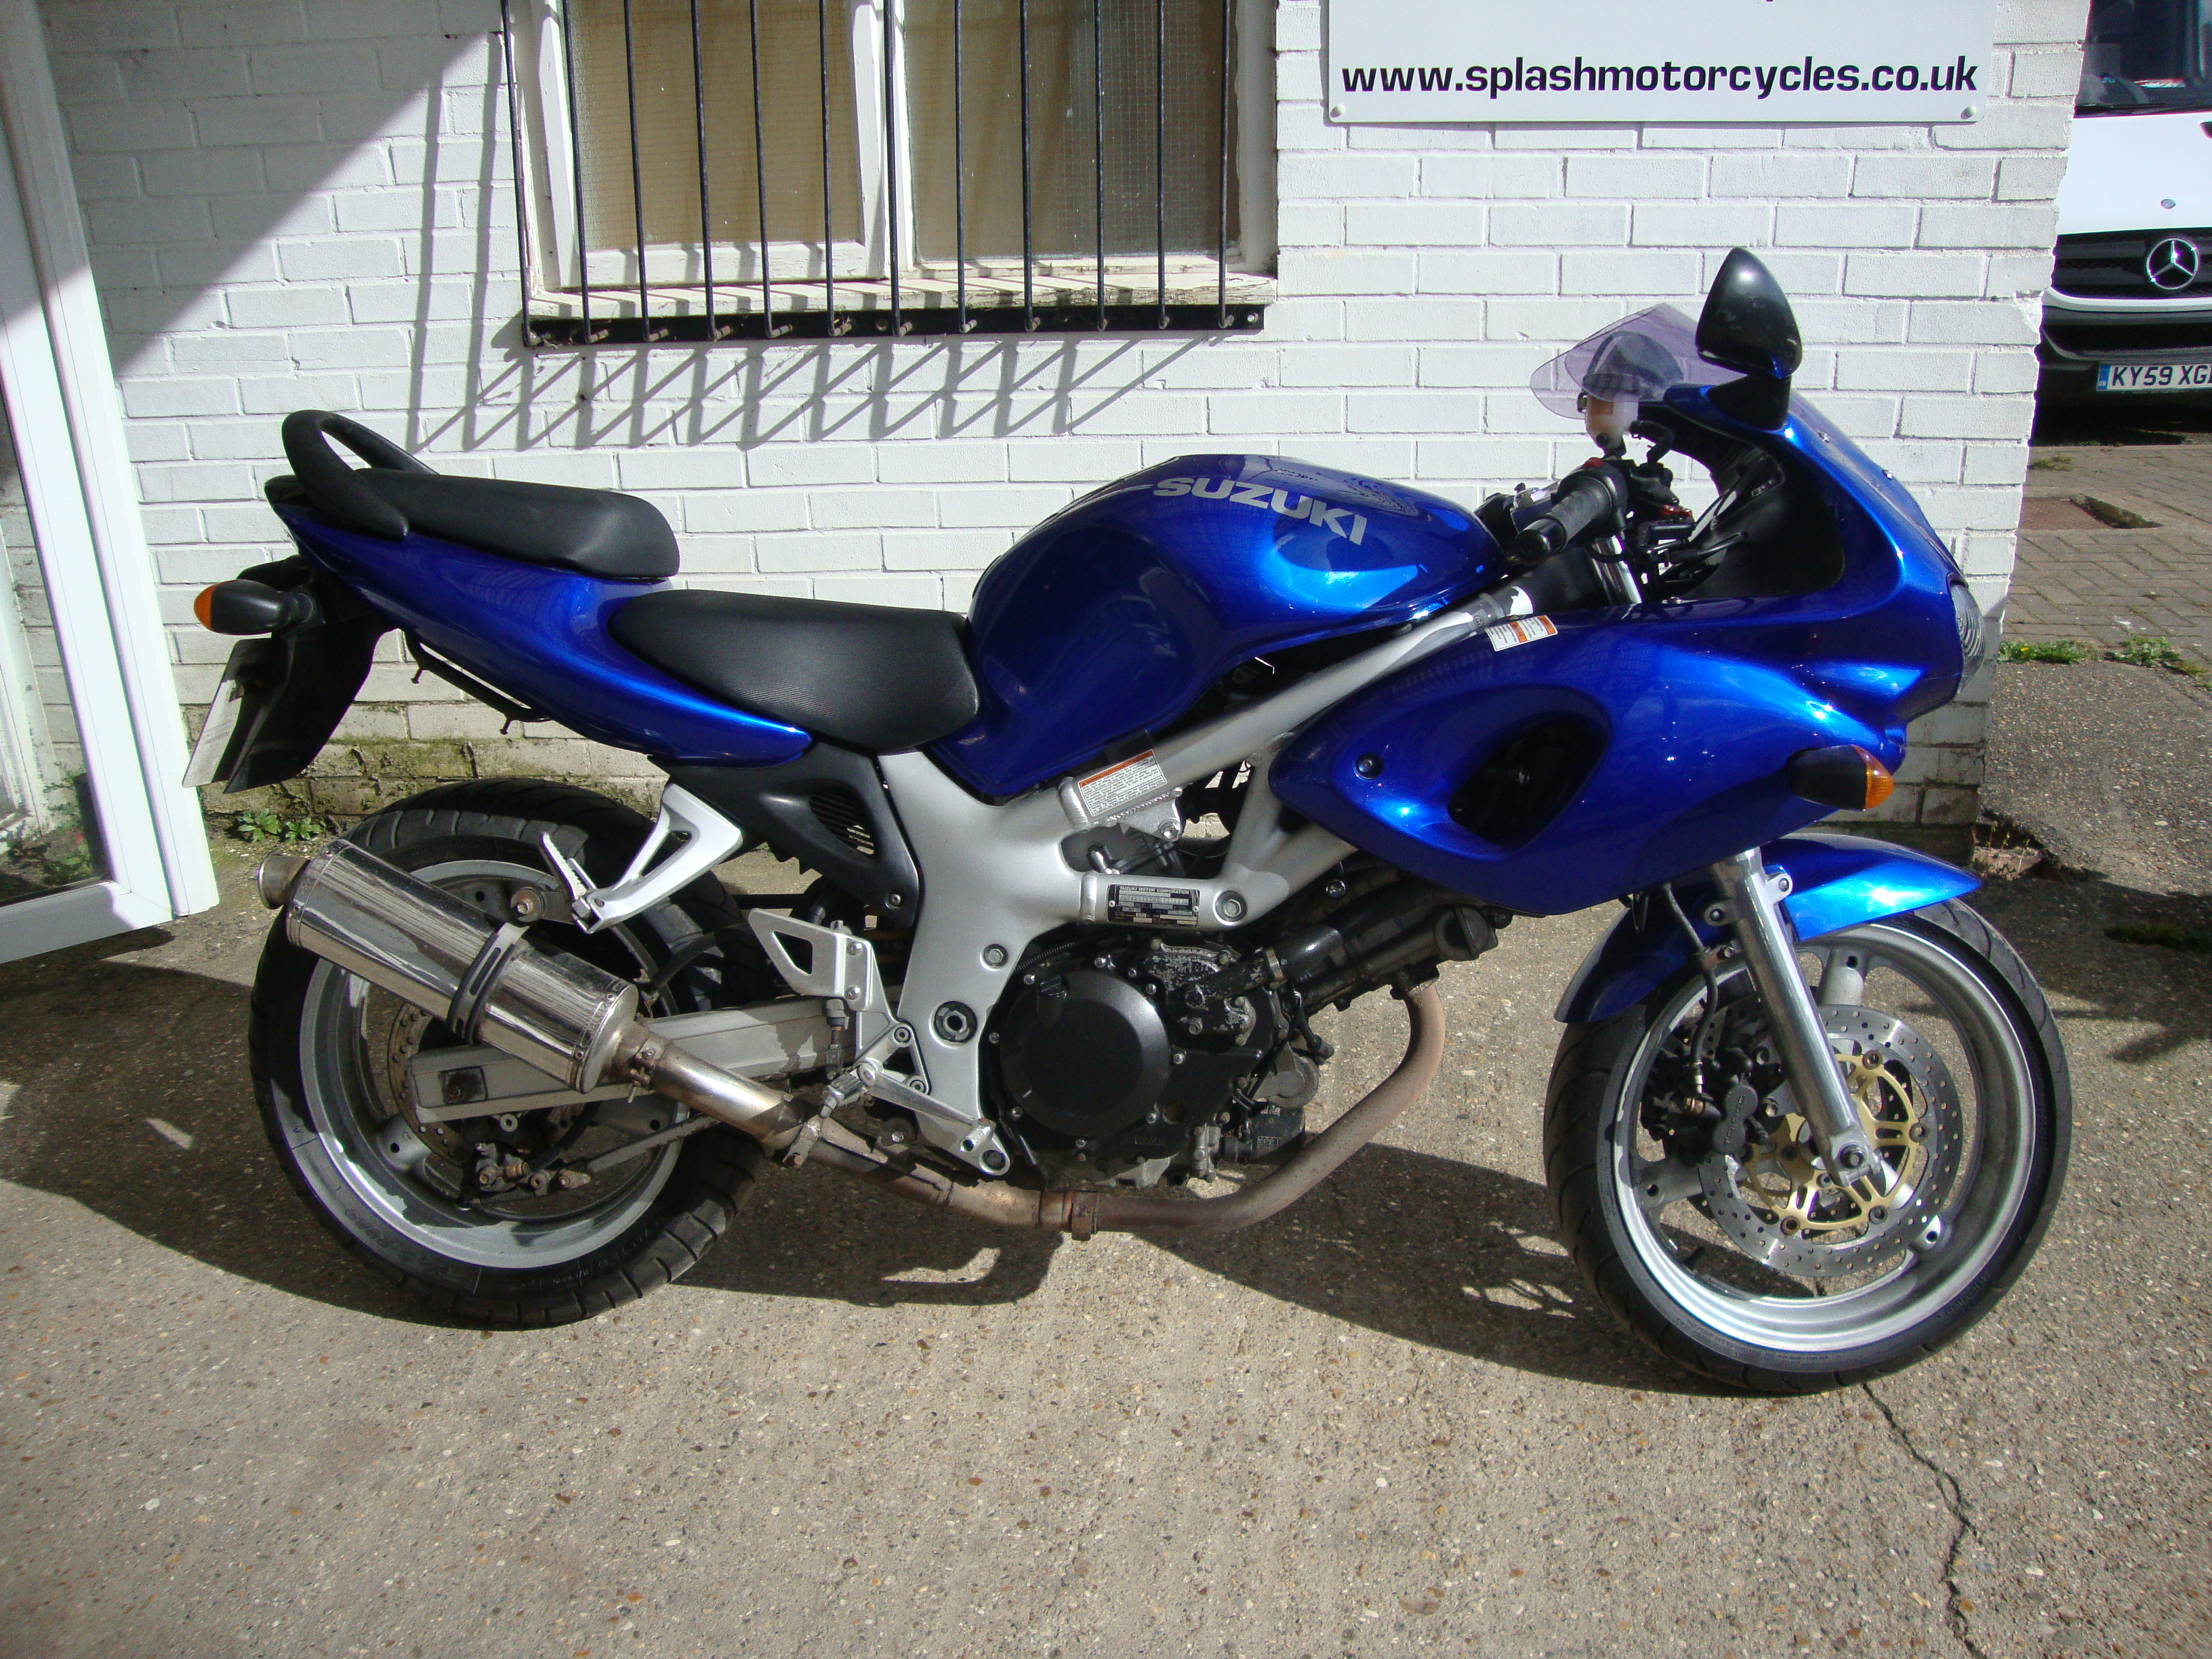 2000 suzuki sv 650 s pics specs and information. Black Bedroom Furniture Sets. Home Design Ideas